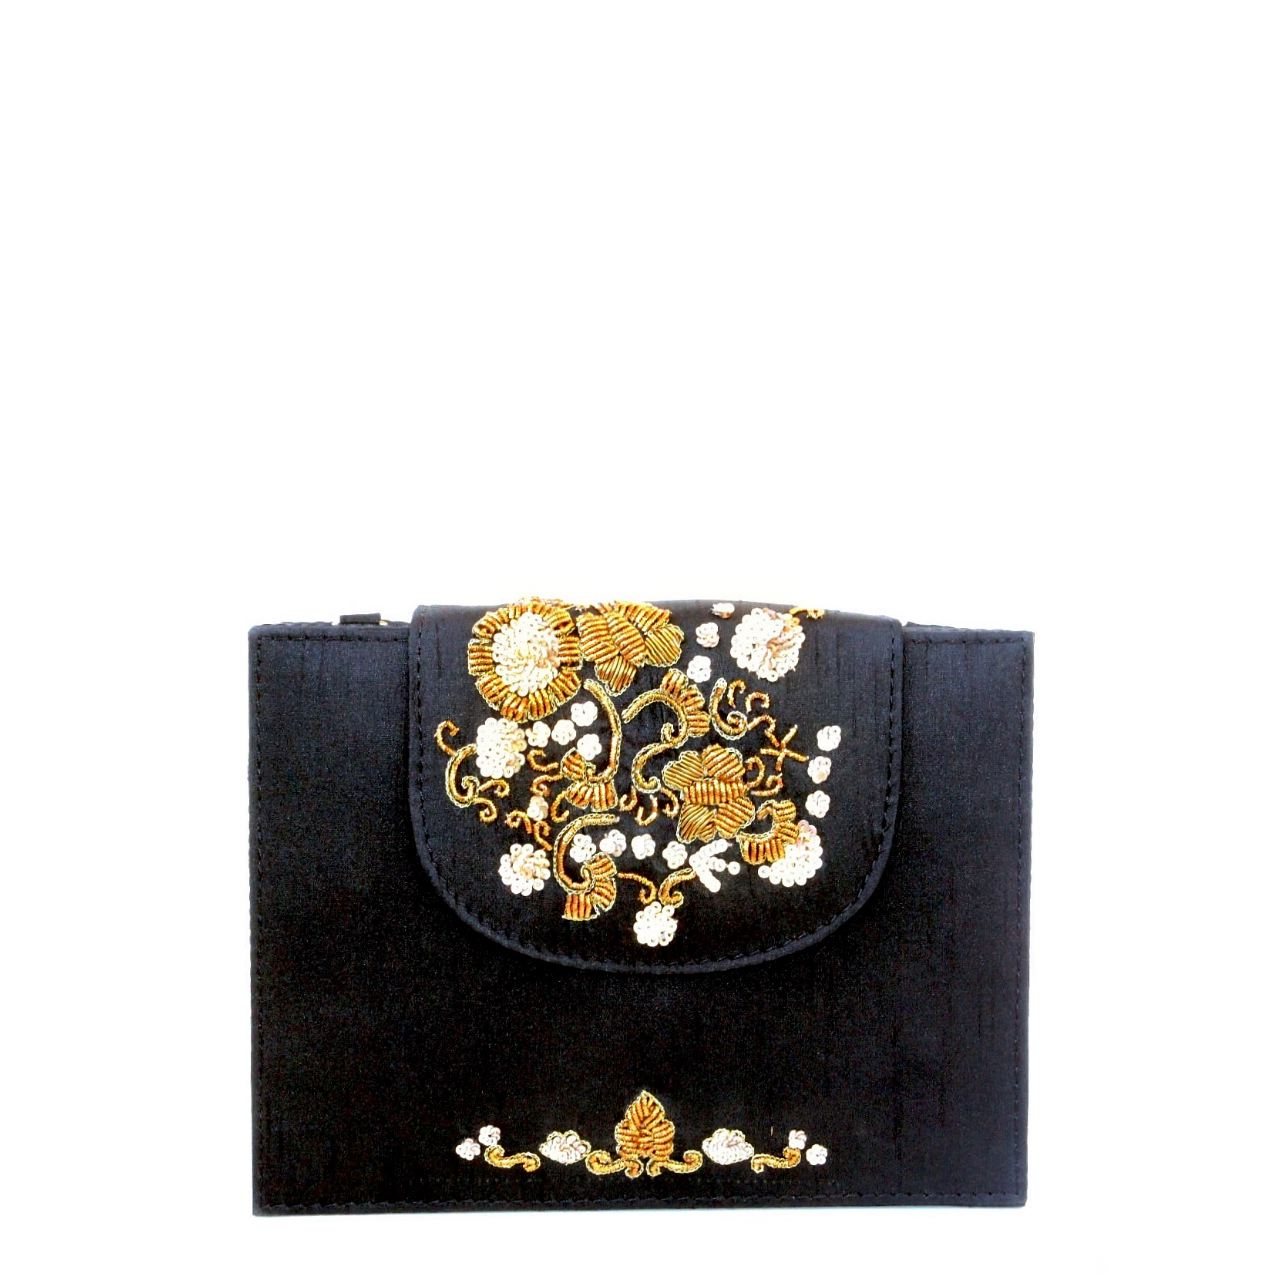 Raw silk fabric with metal and sequin embroidery on flap sides and the bottom edge, lush black velvet interior lining, magnetic closure on flap